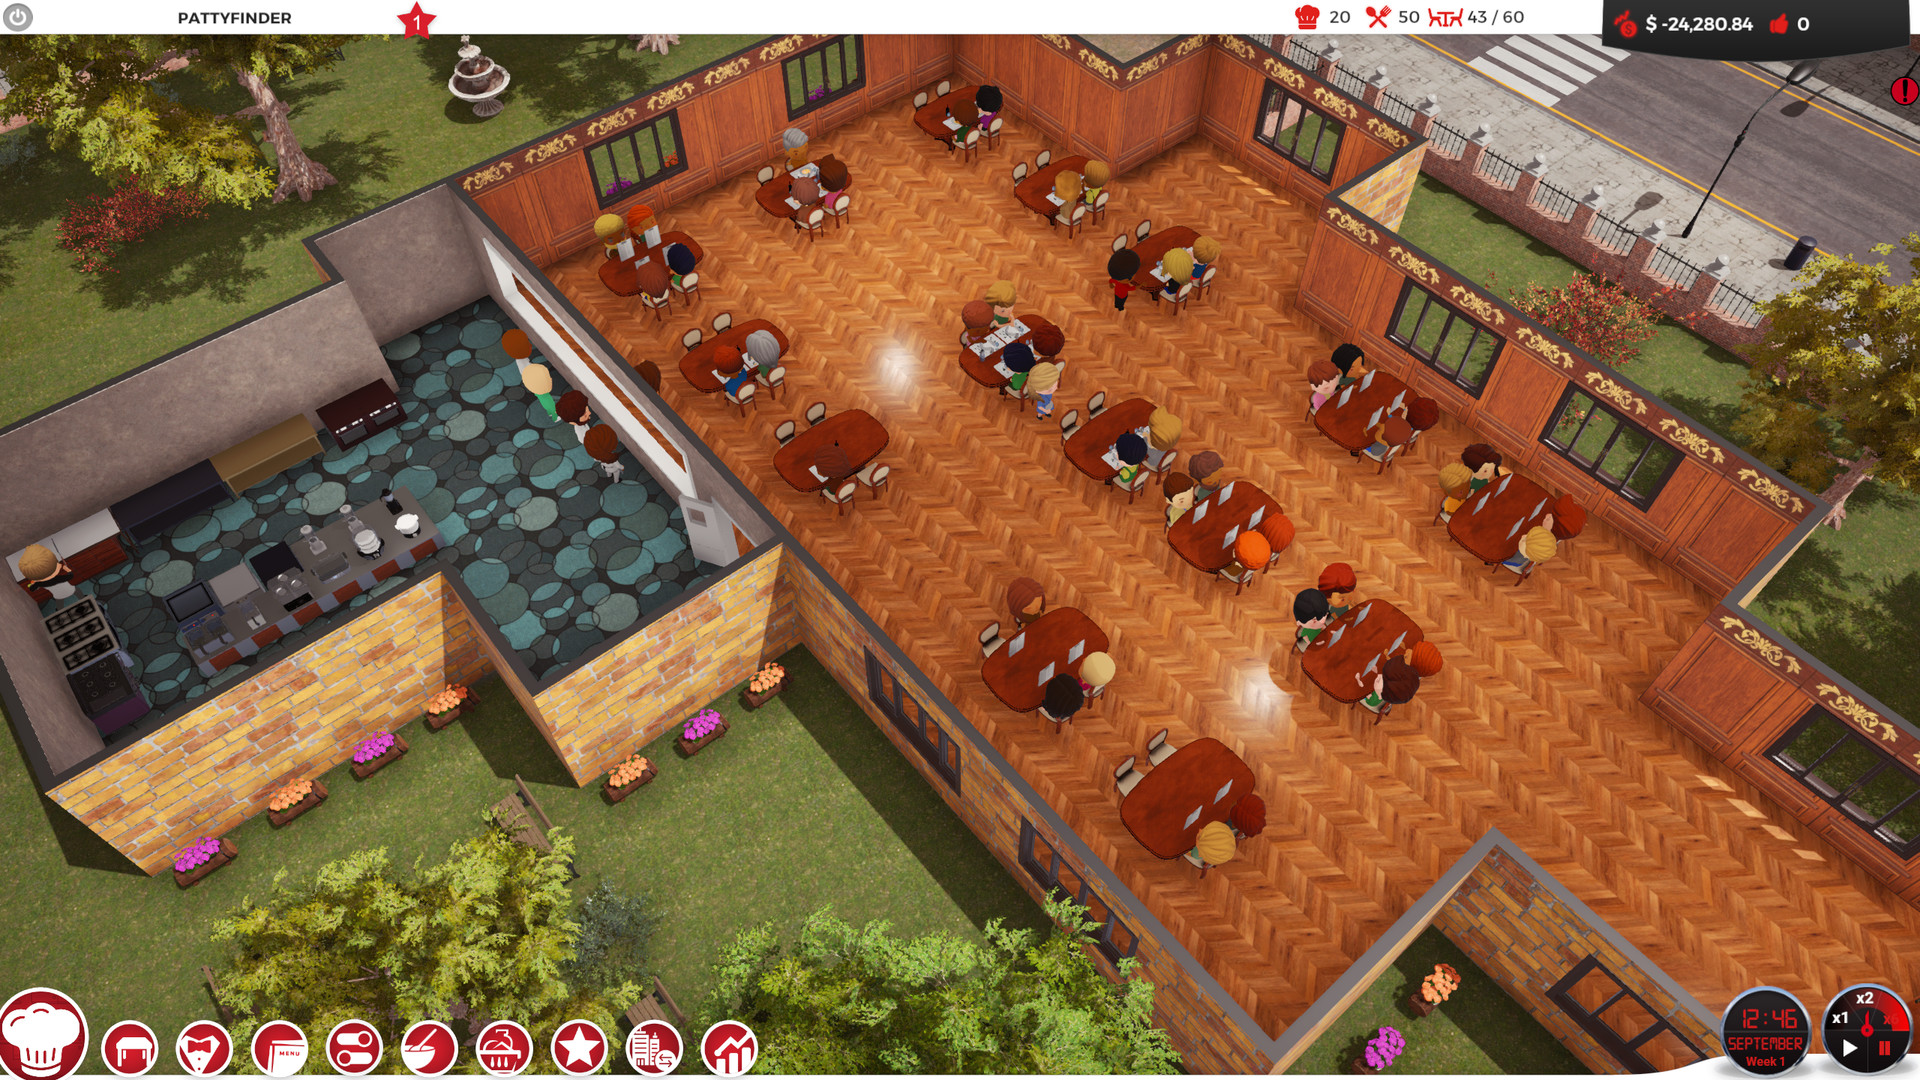 Chef A Restaurant Tycoon Game - codes for restaurant tycoon 2 roblox 2019